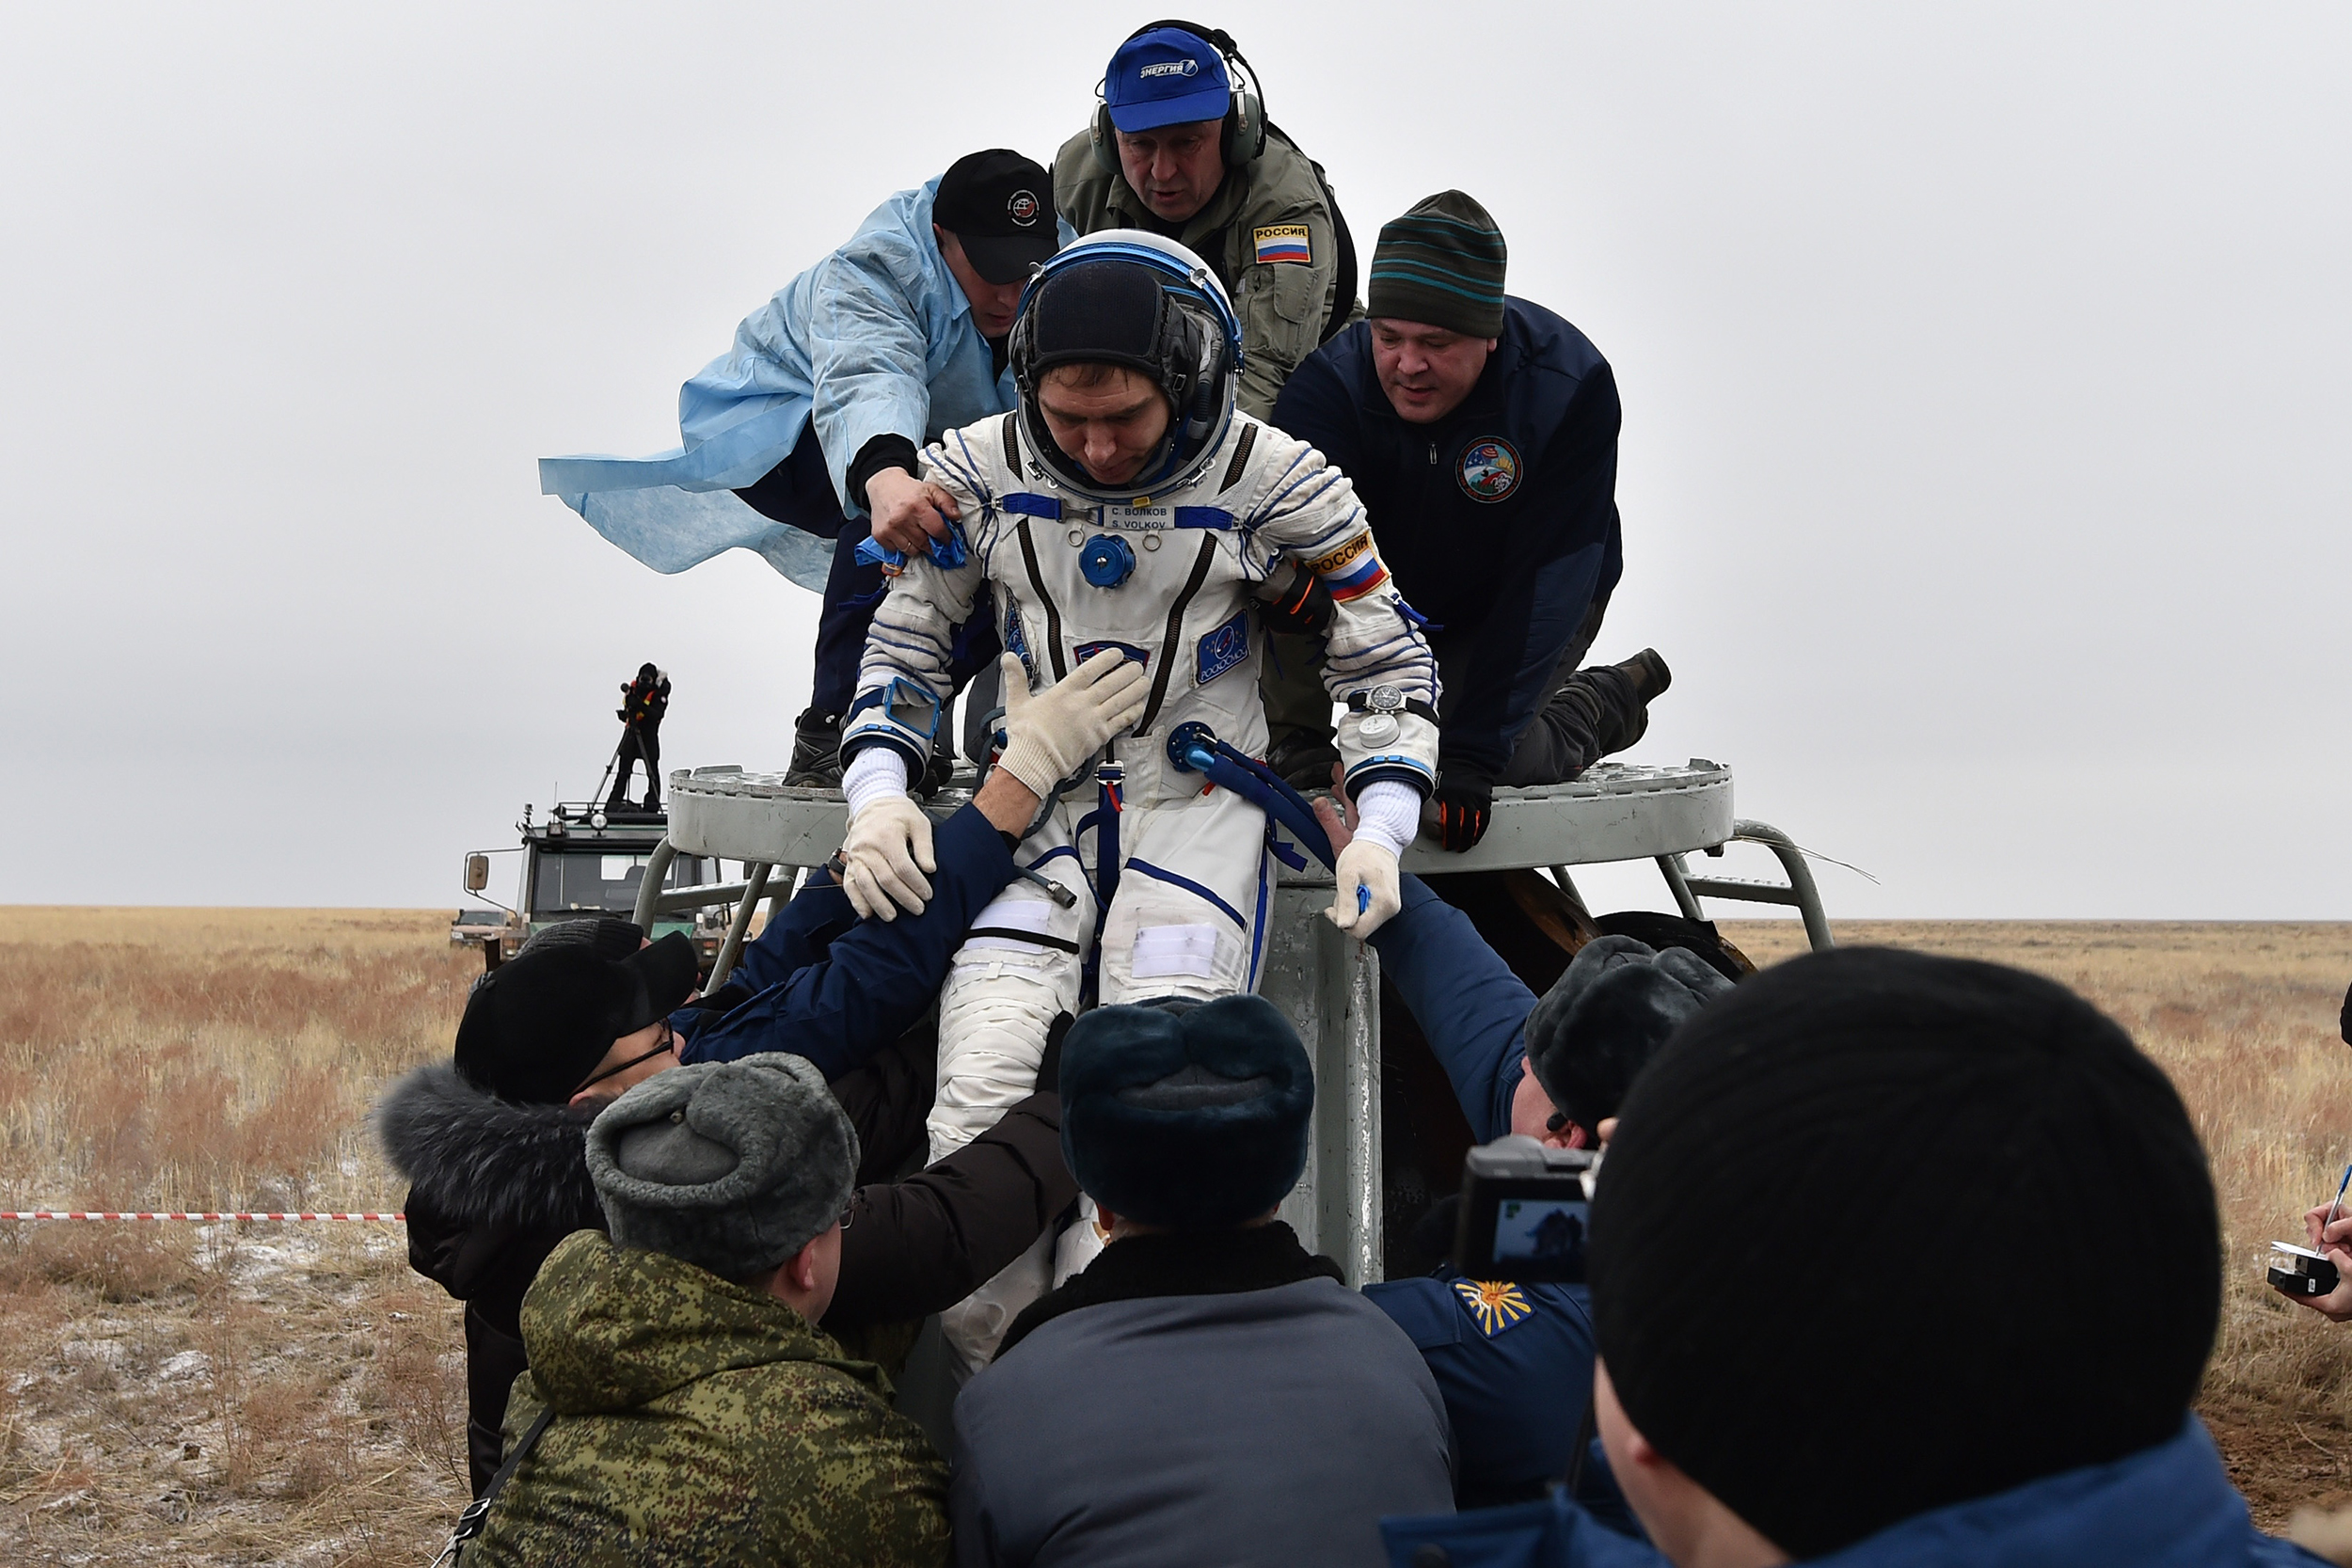 Ground personnel help International Space Station crew member Sergey Volkov of Russia get out of the Soyuz TMA-18M space capsule after landing in Kazakhstan, on March 2, 2016.